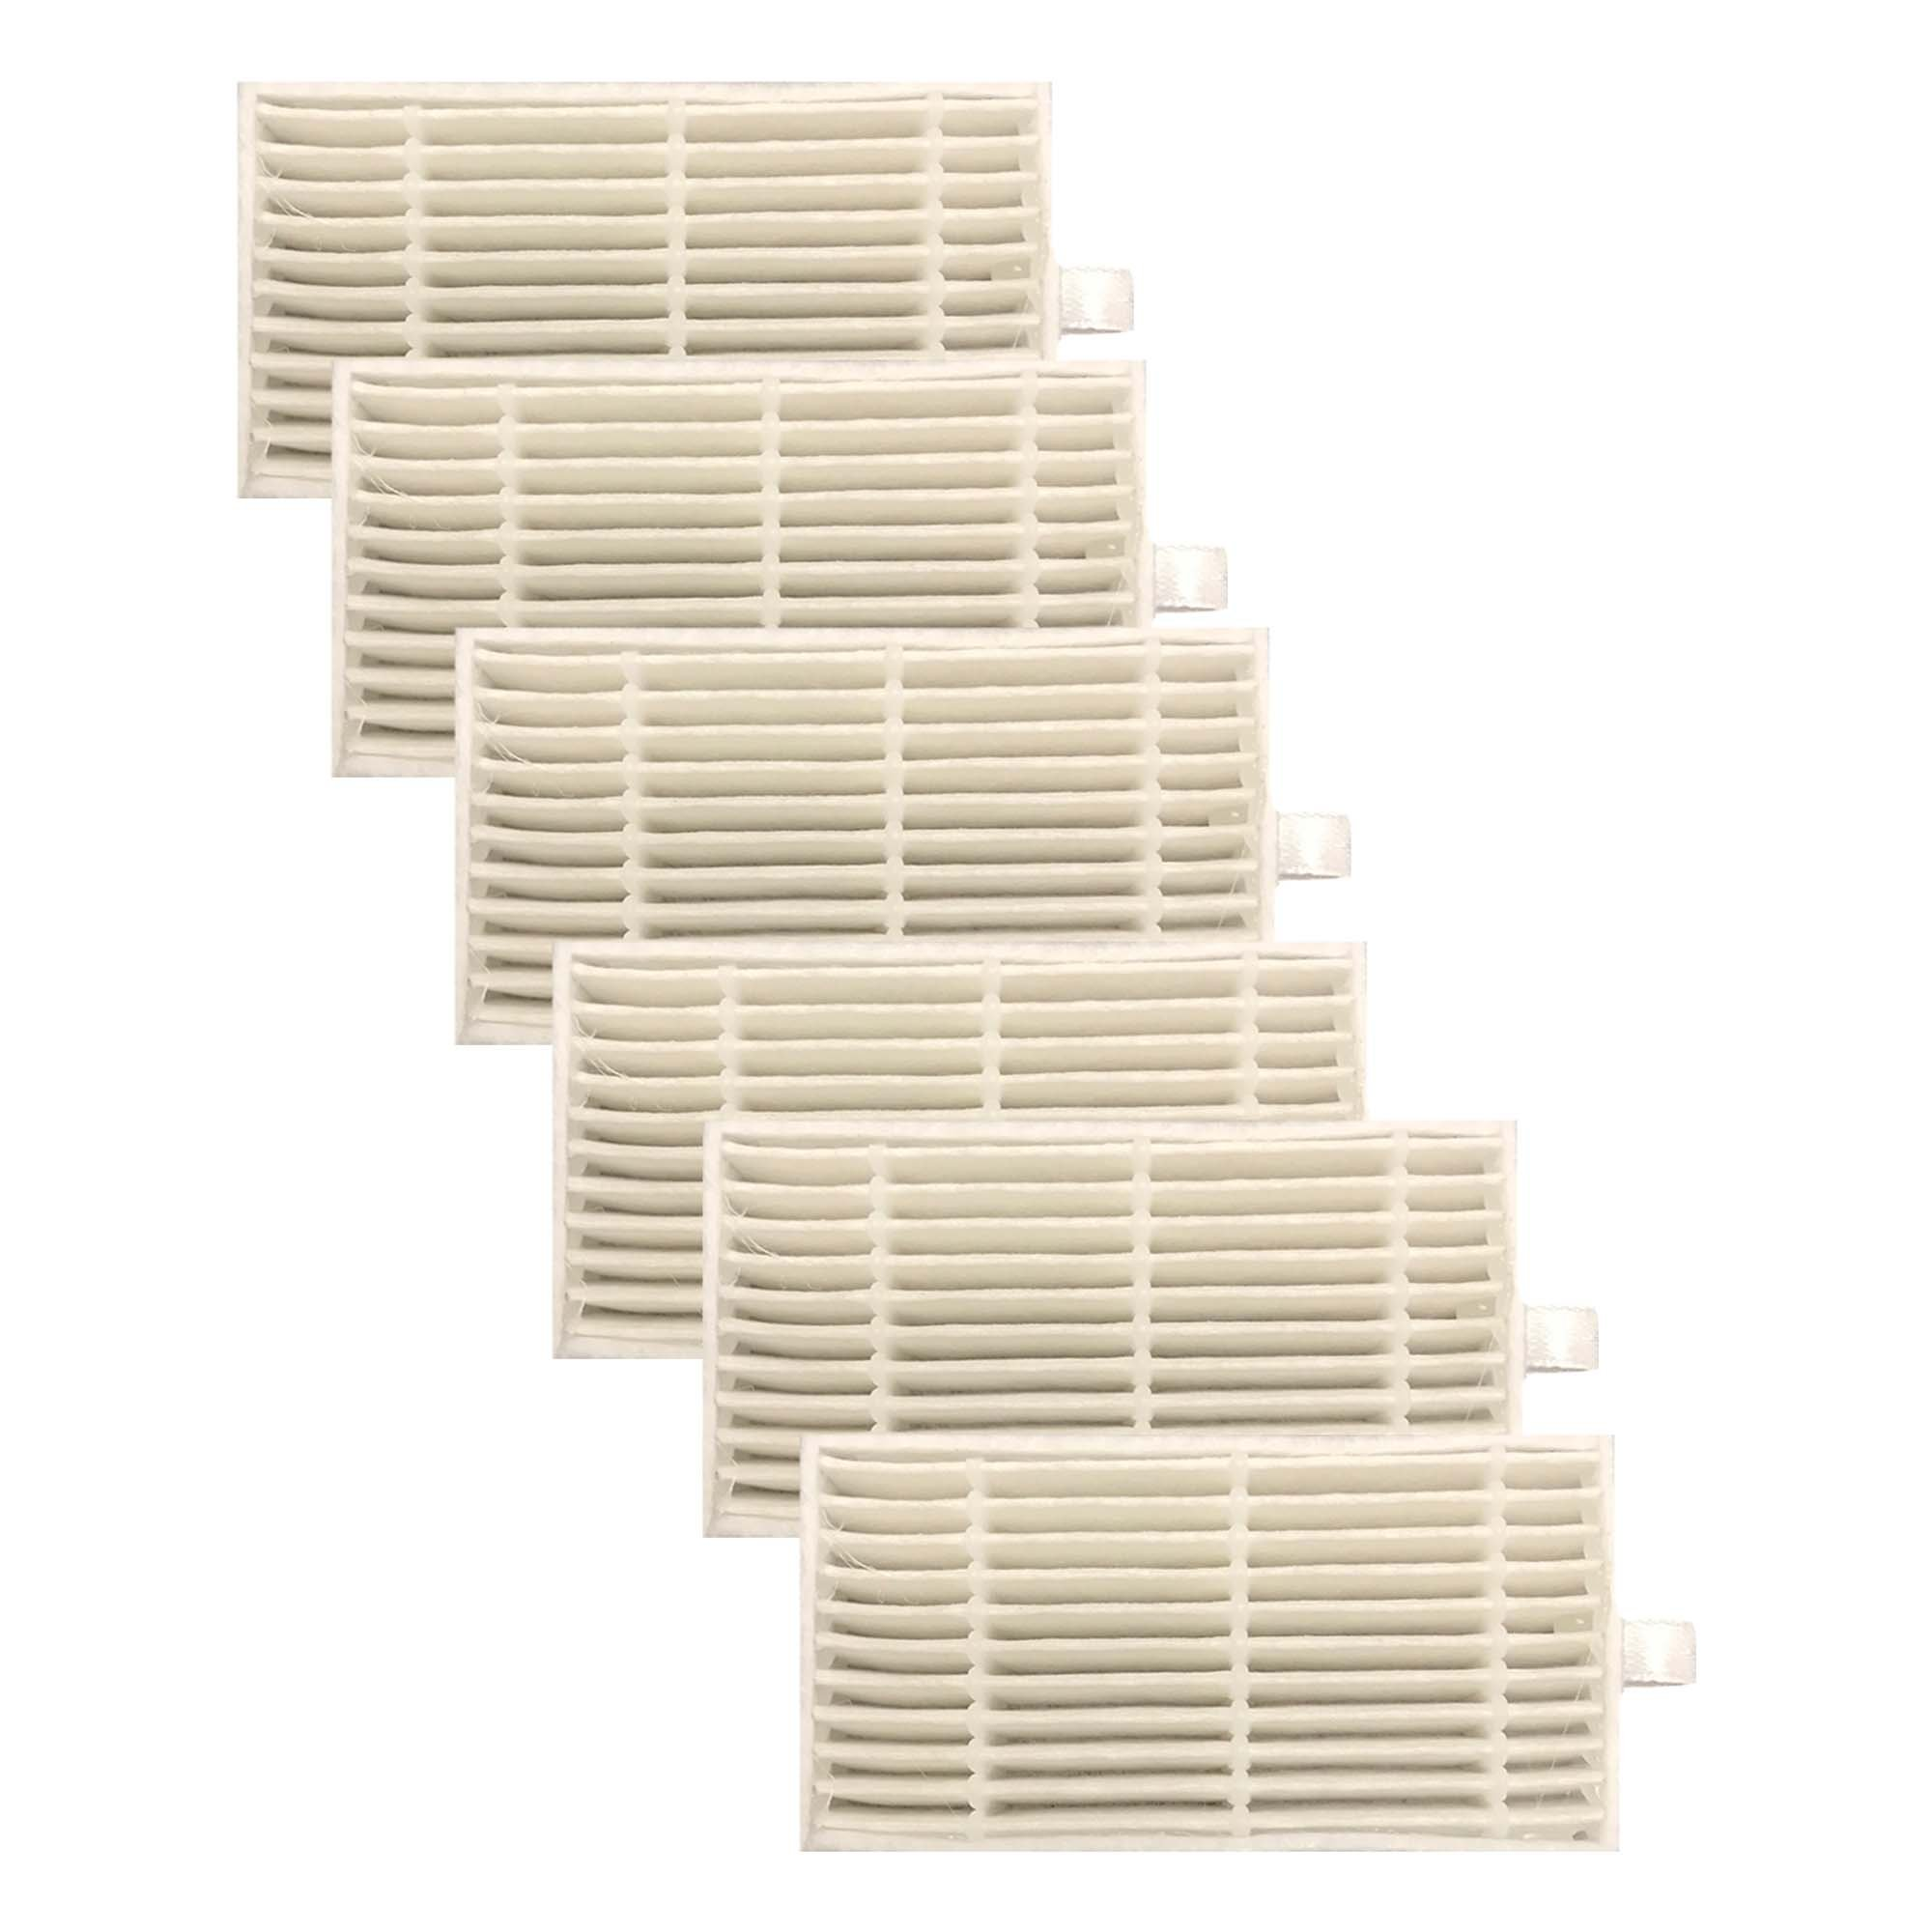 Think Crucial 6 Replacements for iLife Filters, Compatible With V3s, V3s Pro, V5, V5s & V5s Pro Robot Vacuum Cleaners